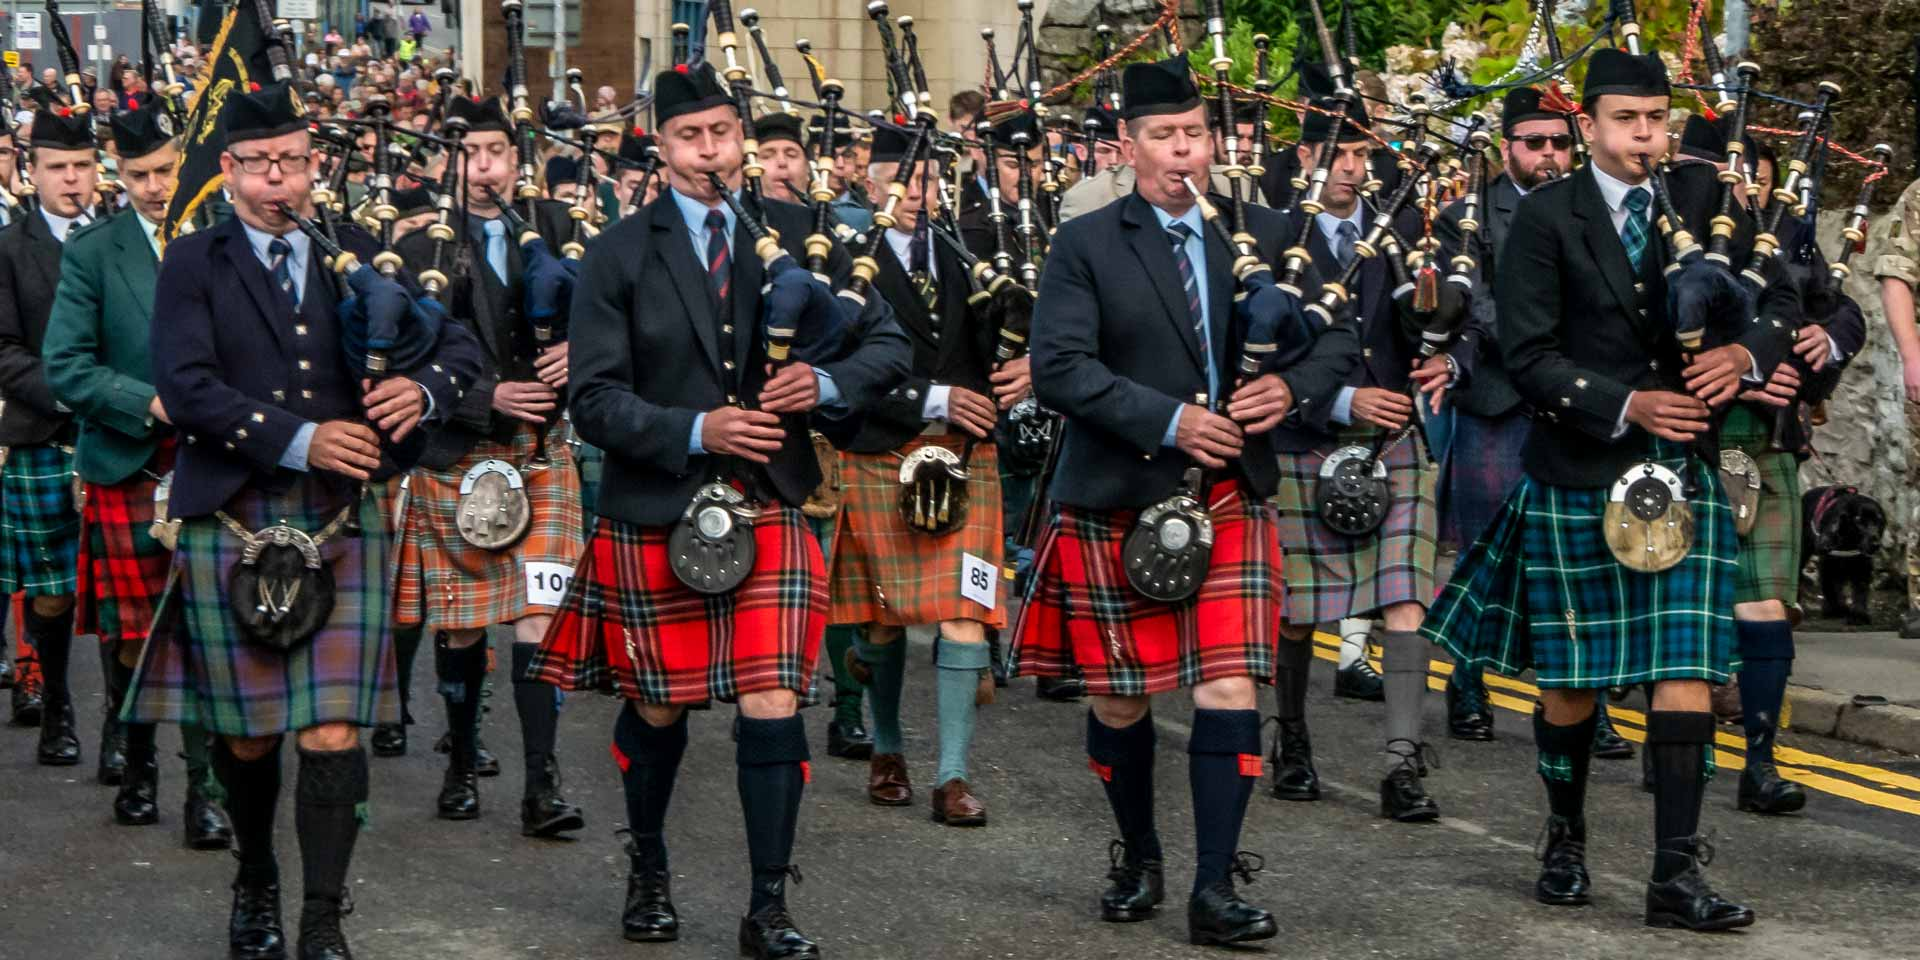 March of the competing pipers, led by the Gold Medal winner